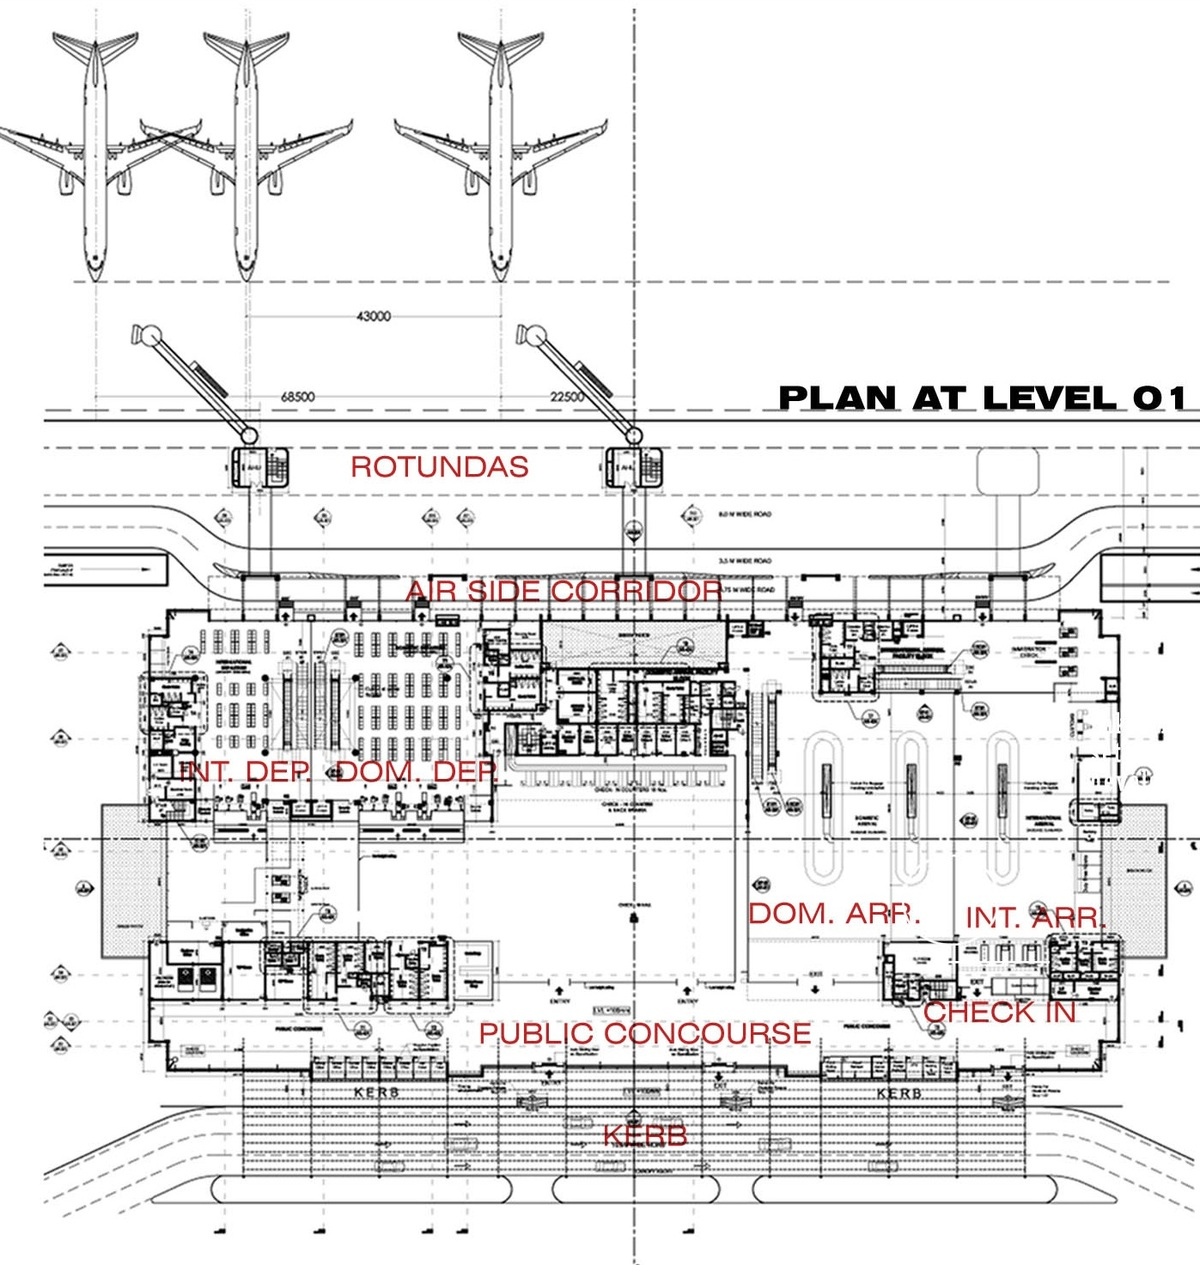 airport planning Airplane characteristics for airport planning these documents provide, in an industry-standardized format, airplane characteristics data for general airport planning.